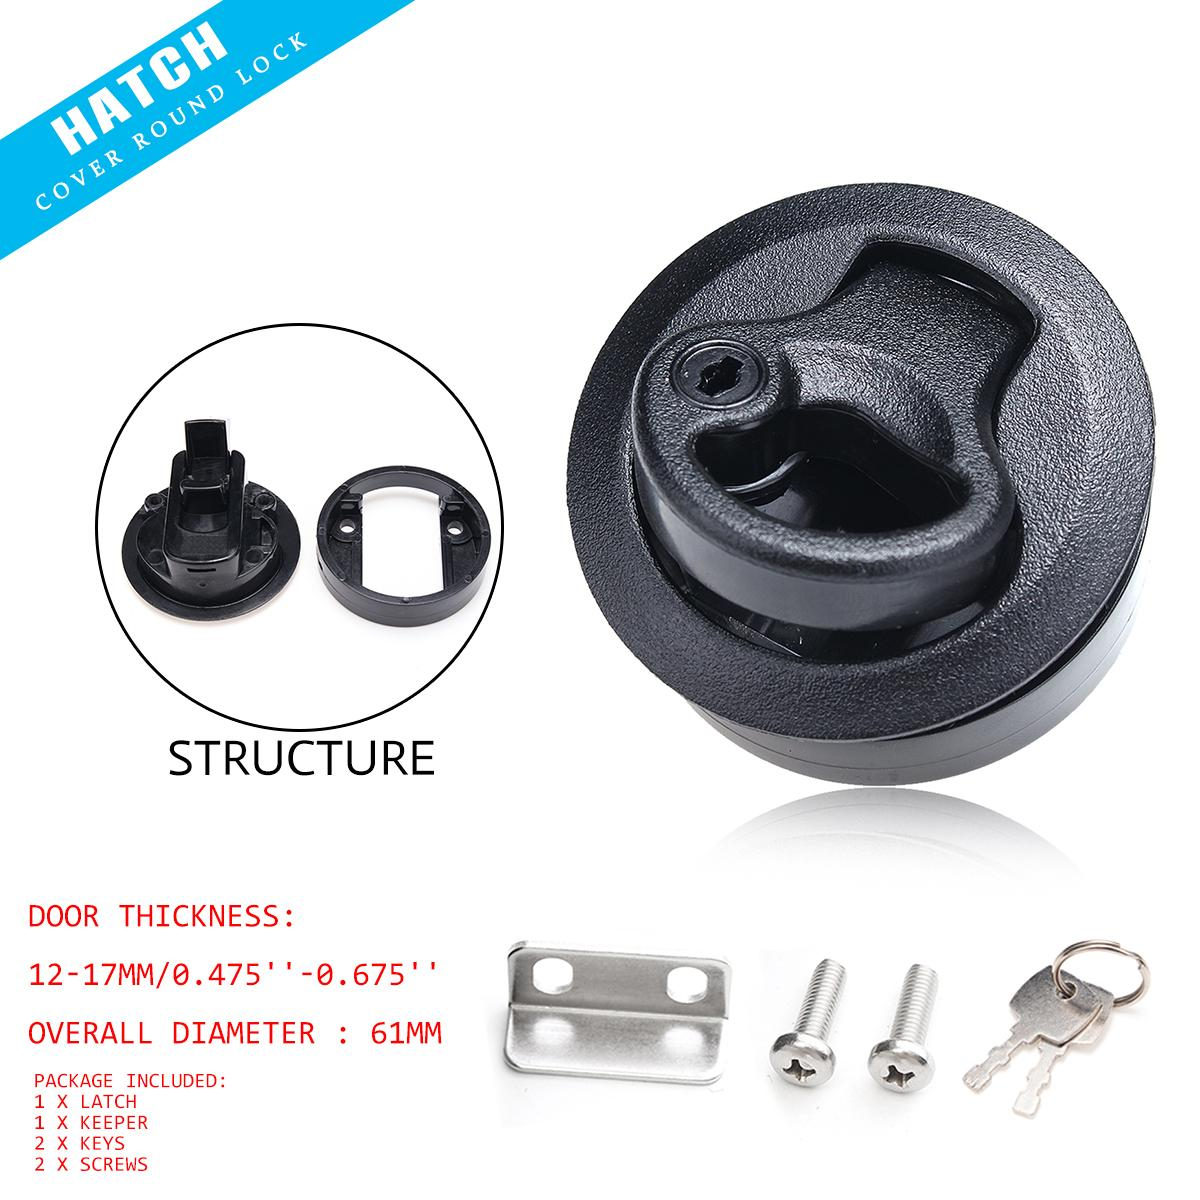 US $6 34 21% OFF|Slam Latch Hatch Round Pull w/ Lock 1/2'' Door For M1 43  RV Marine Boat 12 17mm-in Tools from Home & Garden on Aliexpress com |